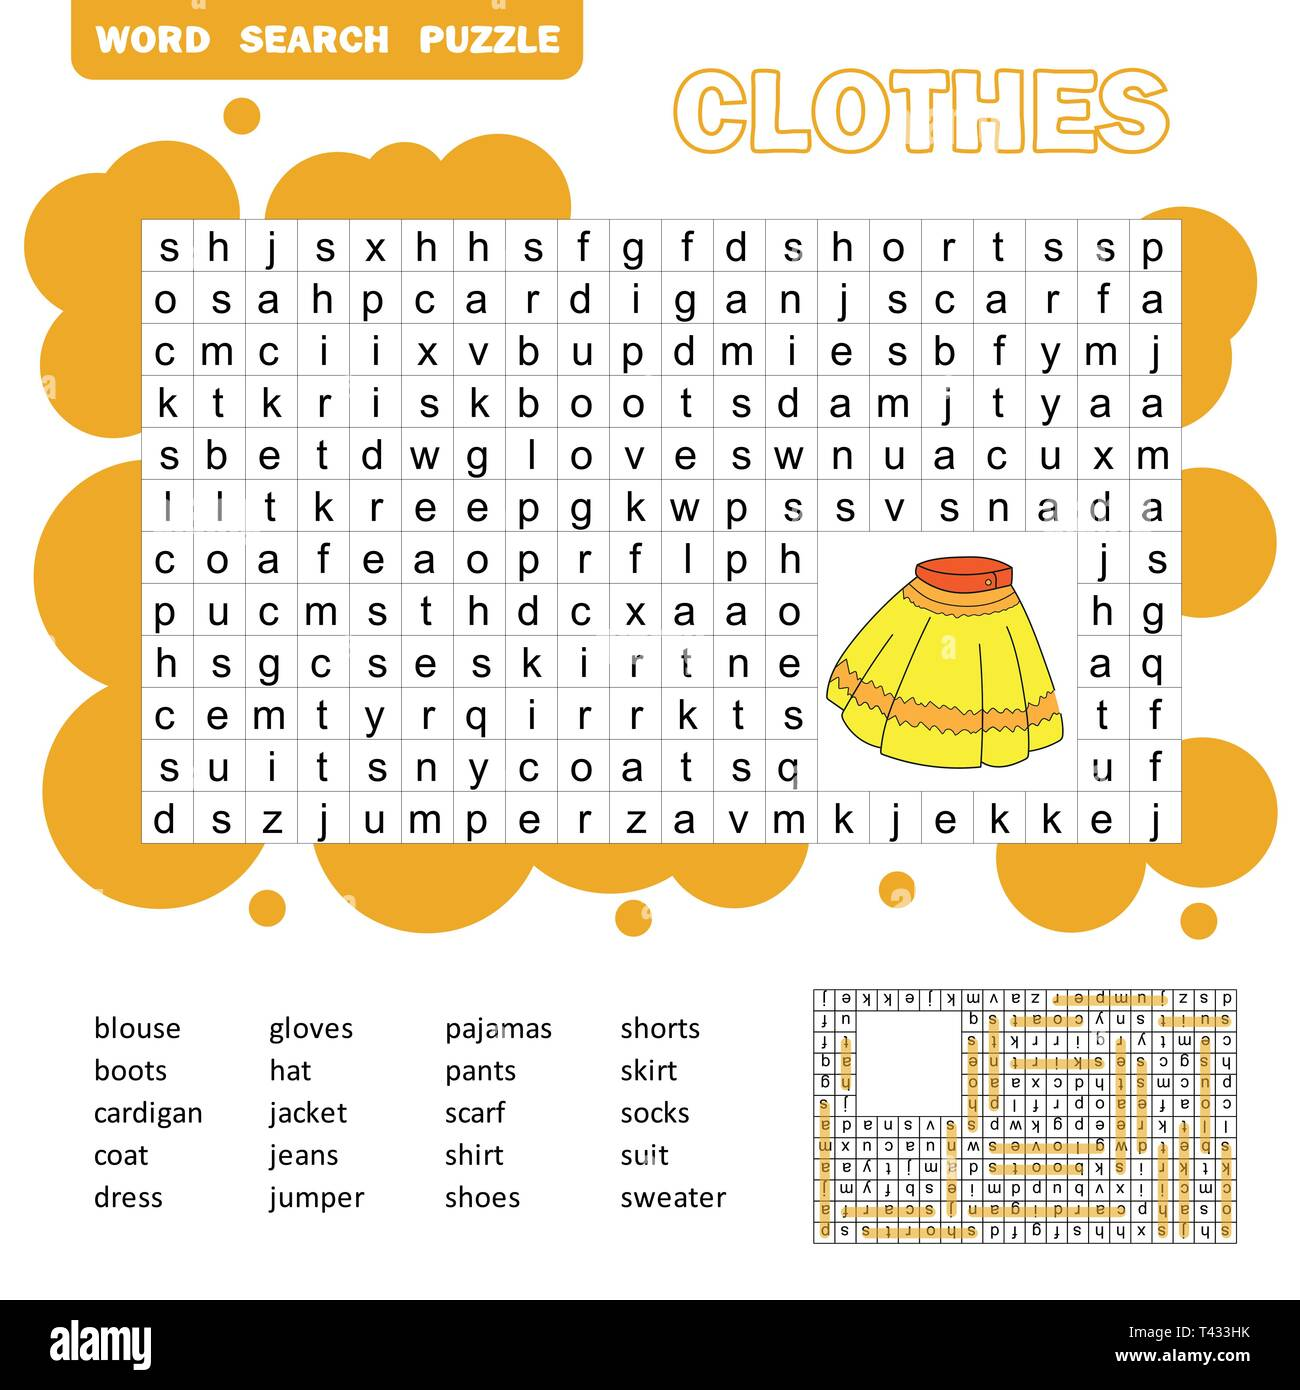 Educational Game For Kids Word Search Puzzle With Clothes